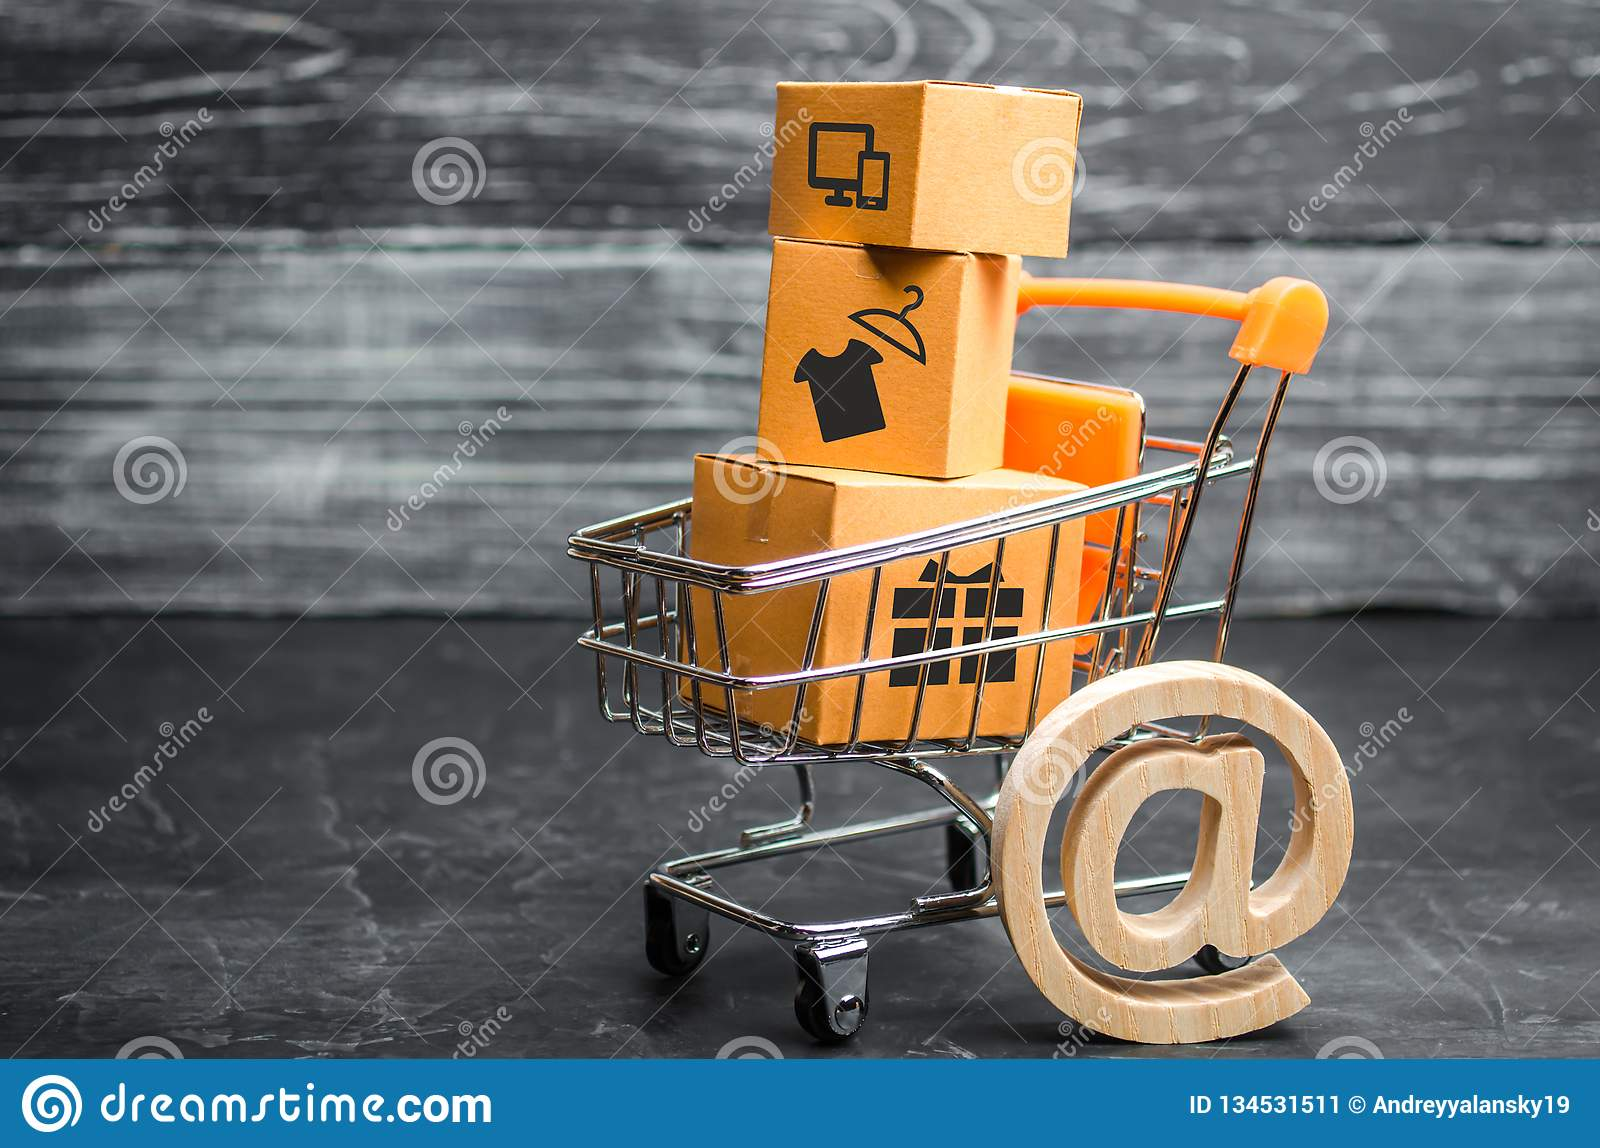 Supermarket cart with boxes, merchandise: the concept of buying and selling goods and services, internet commerce, online shopping